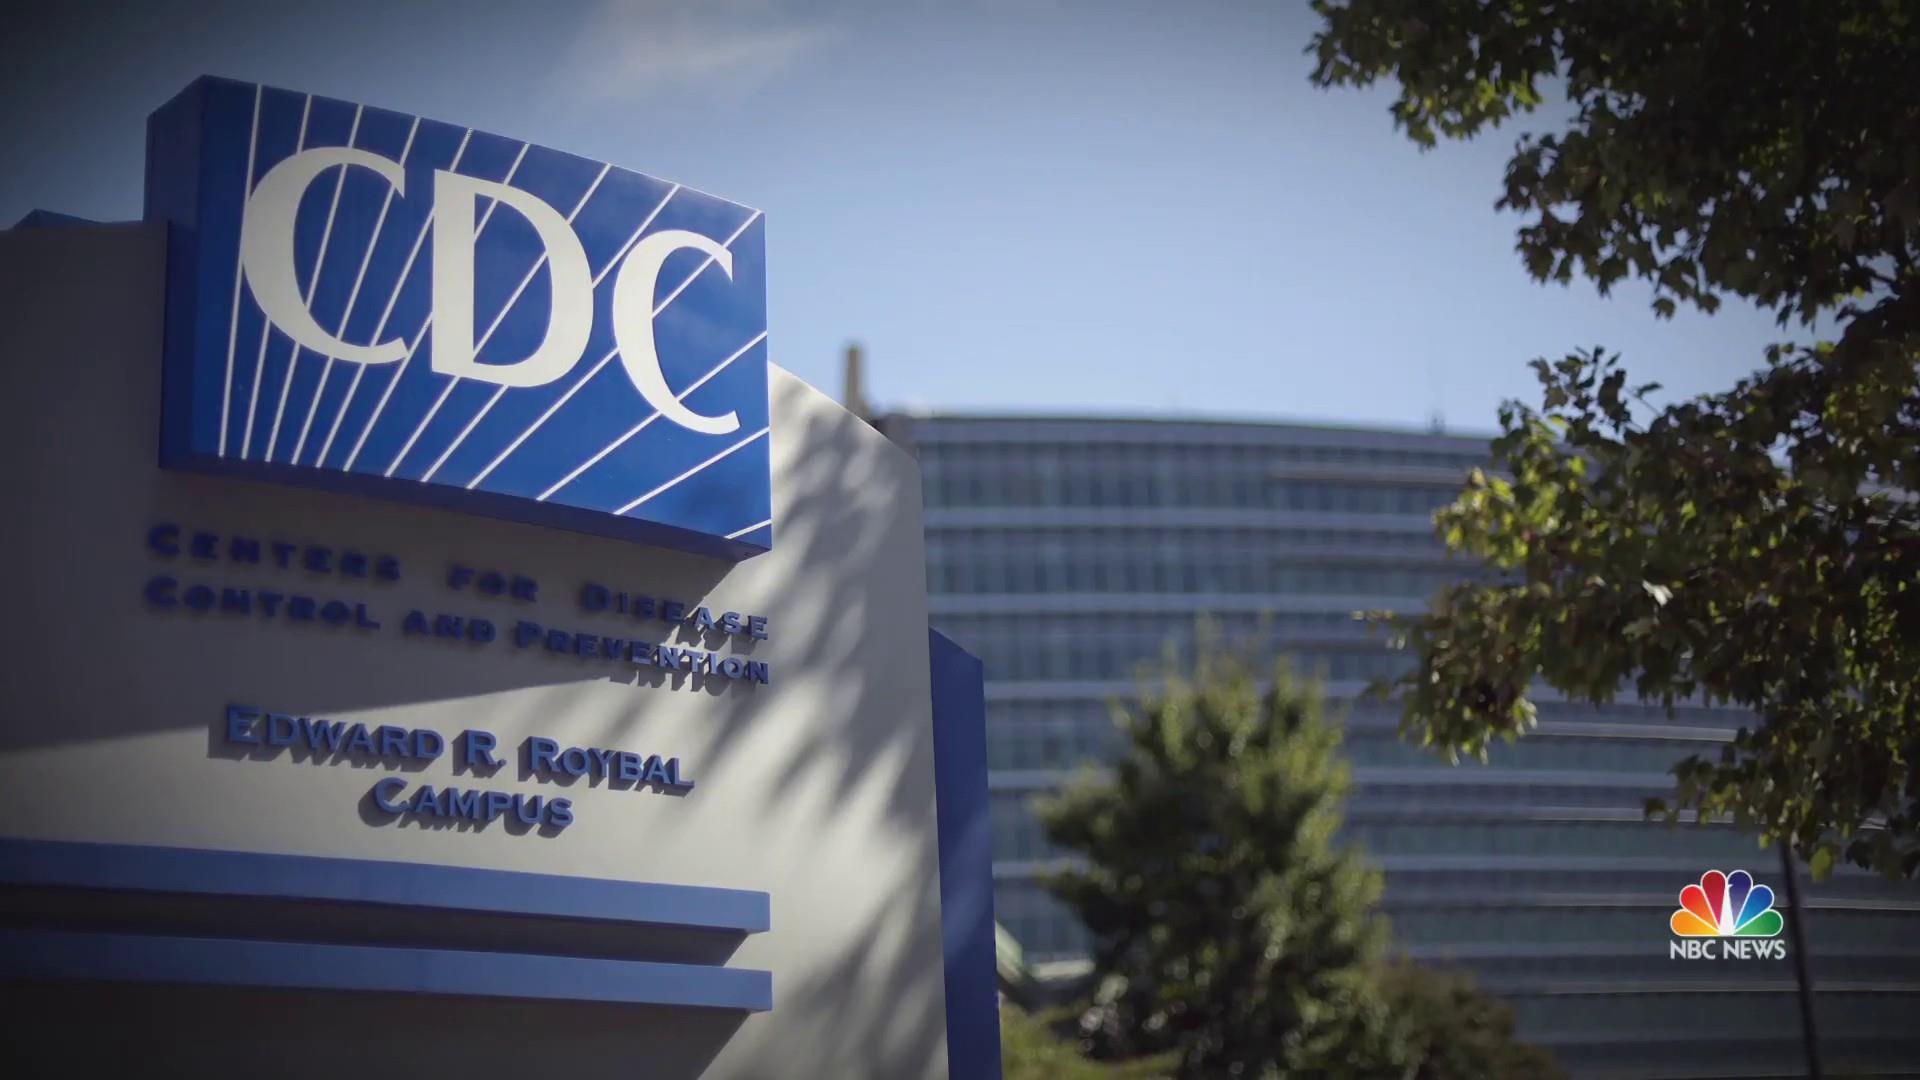 CDC warns people to stop vaping after rise in serious lung disease including 5 deaths